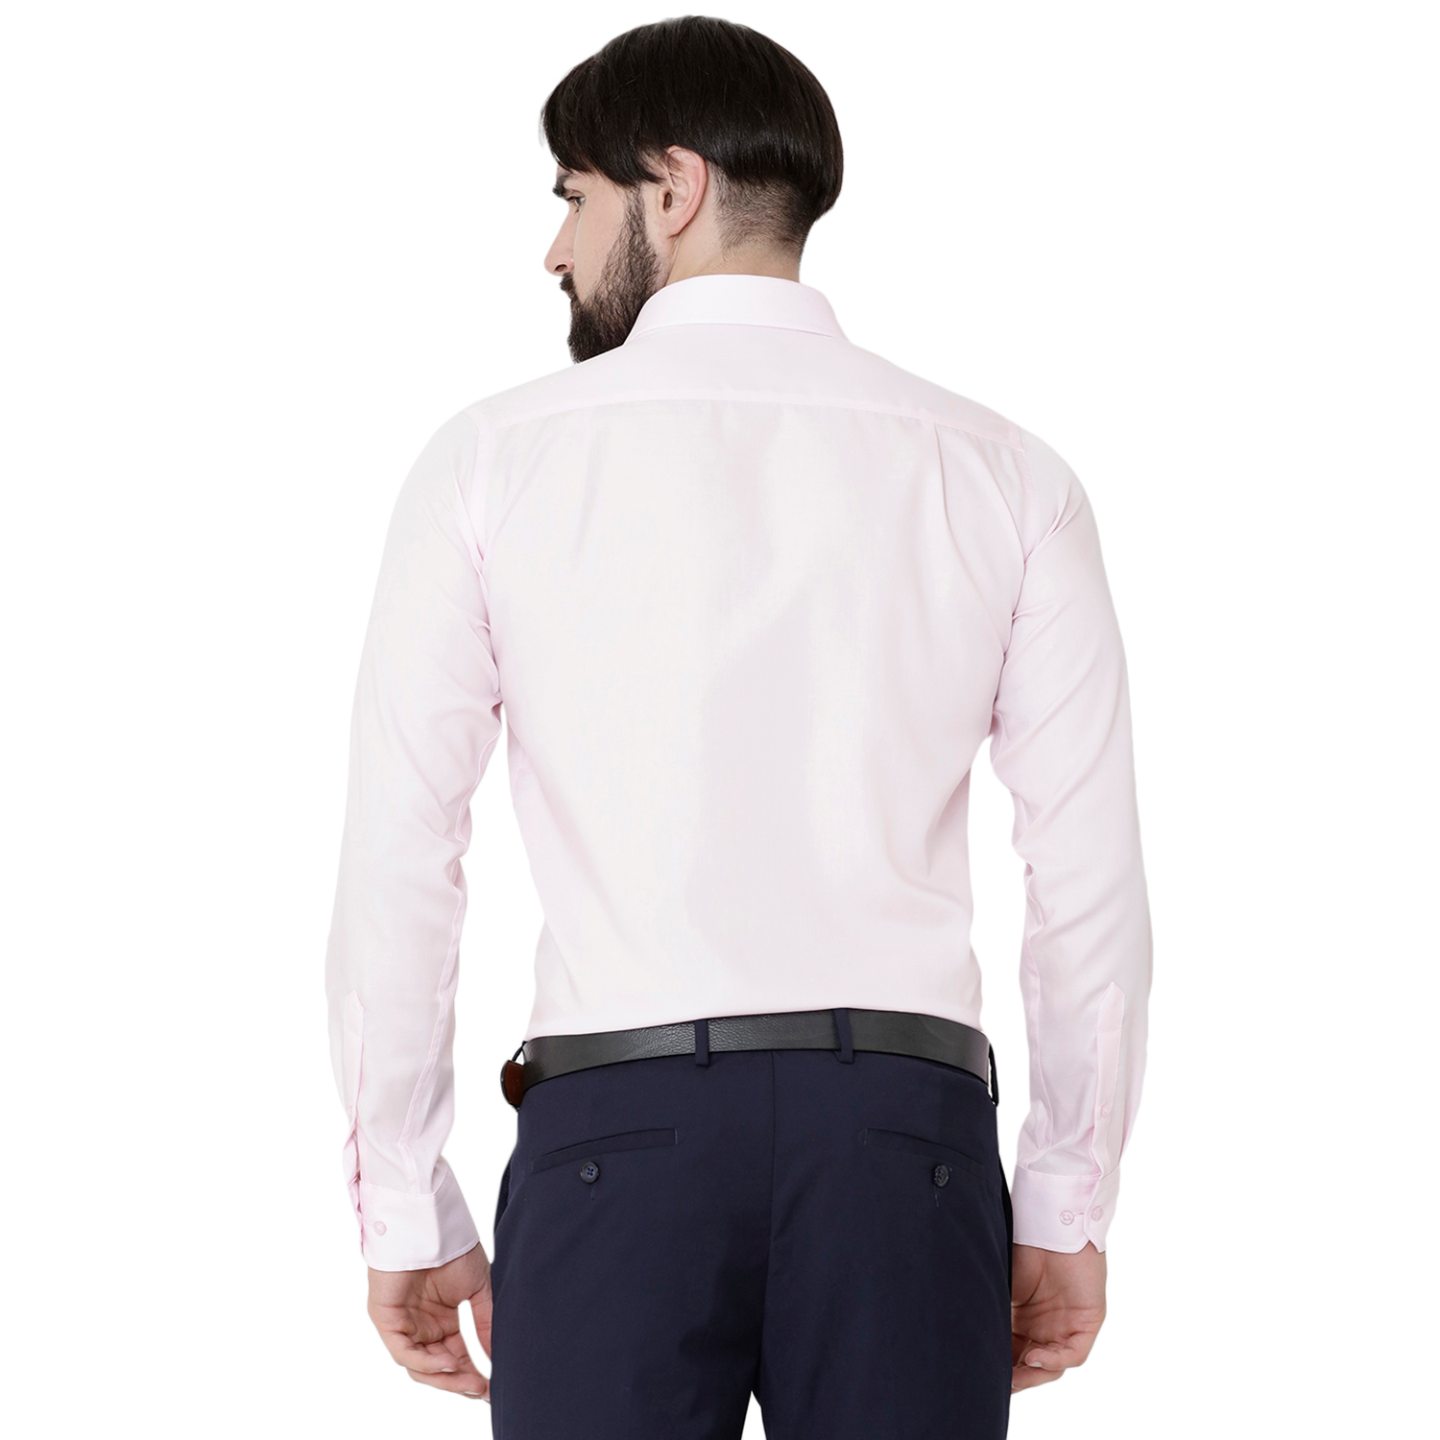 Double TWO Paradigm Men's Solid Pale Pink Pure Cotton Non-Iron Wrinkle Free Shirt